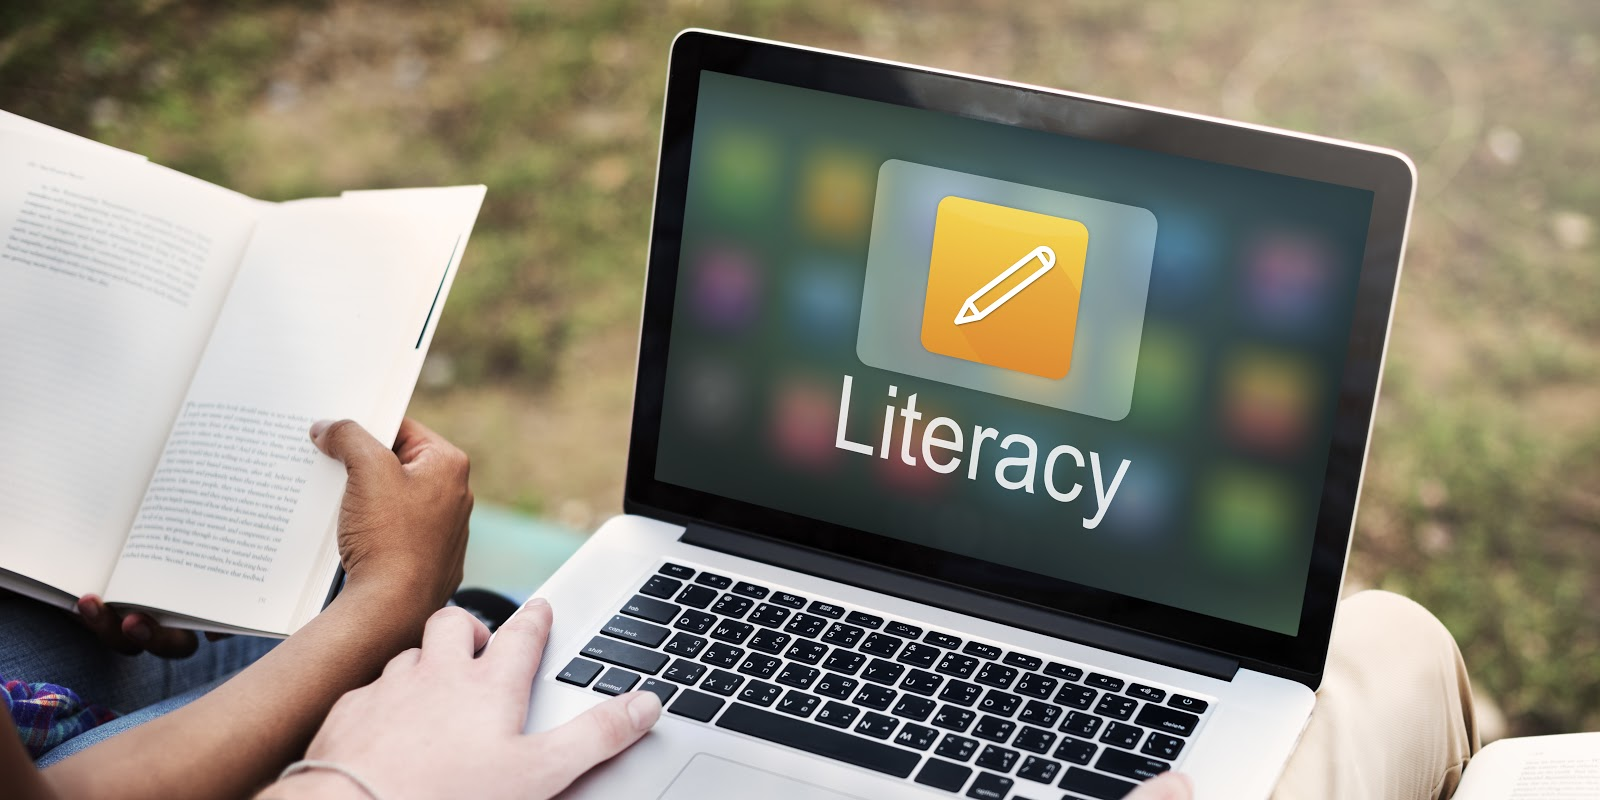 Digital Literacy AdobeStock 123976906